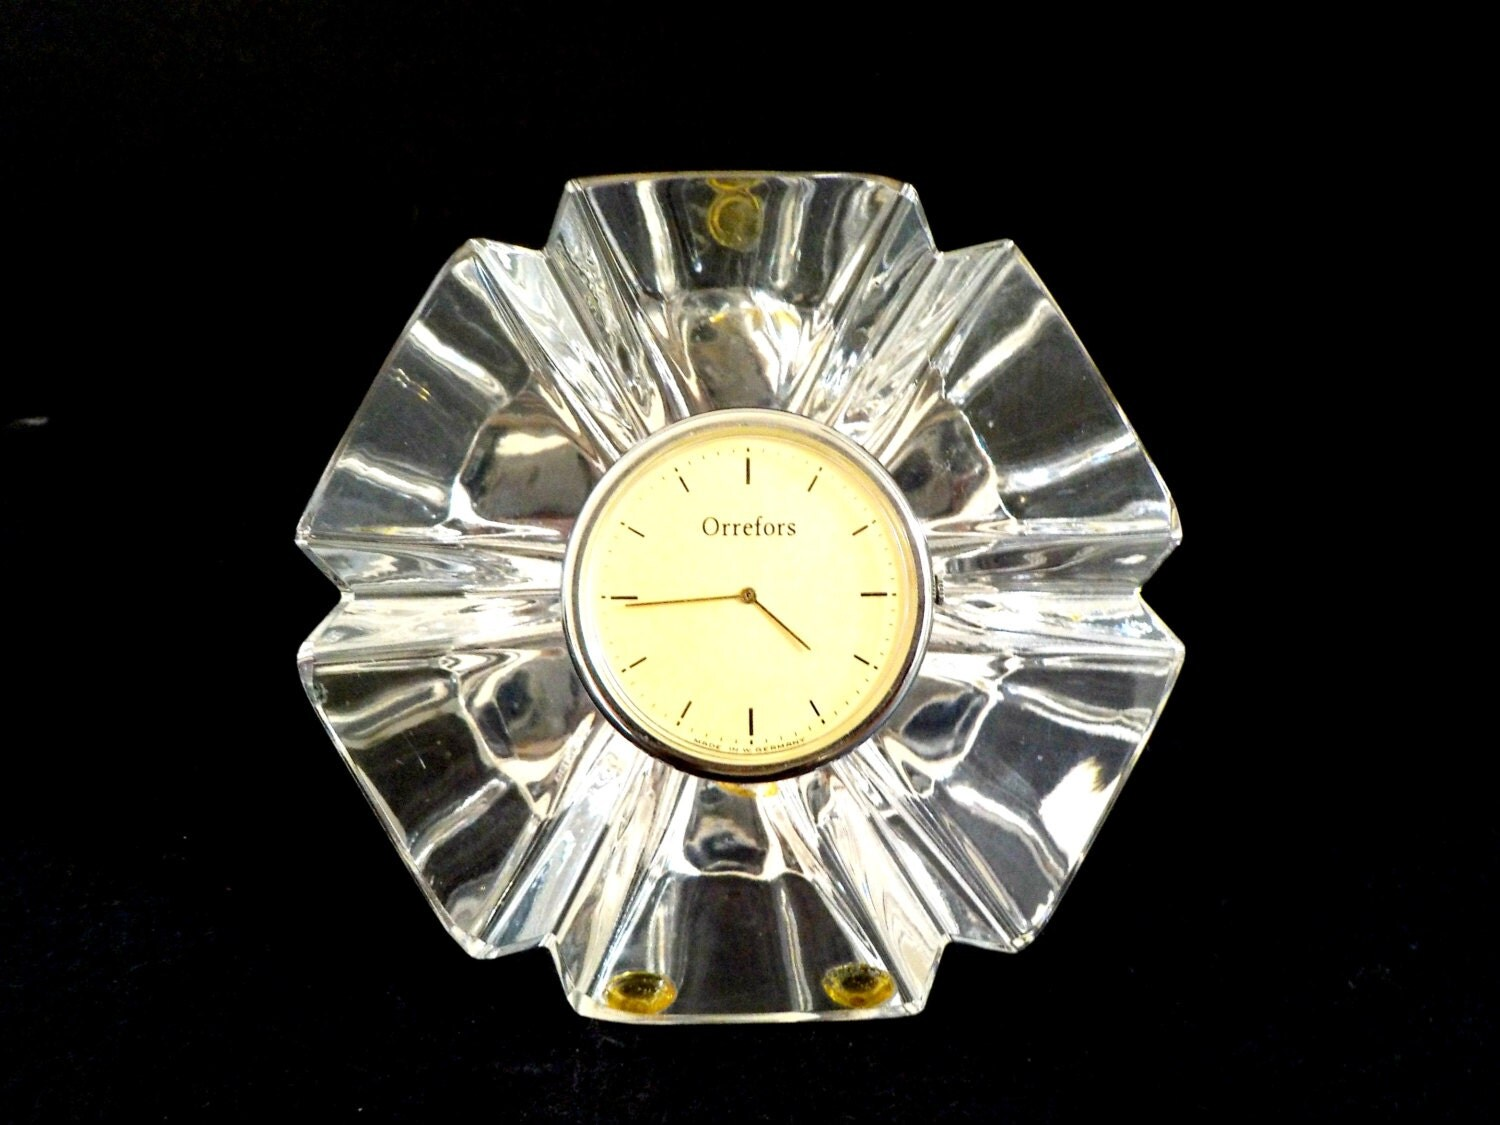 Vintage Orrefors Crystal Clock Desk Clock Mantle Clock